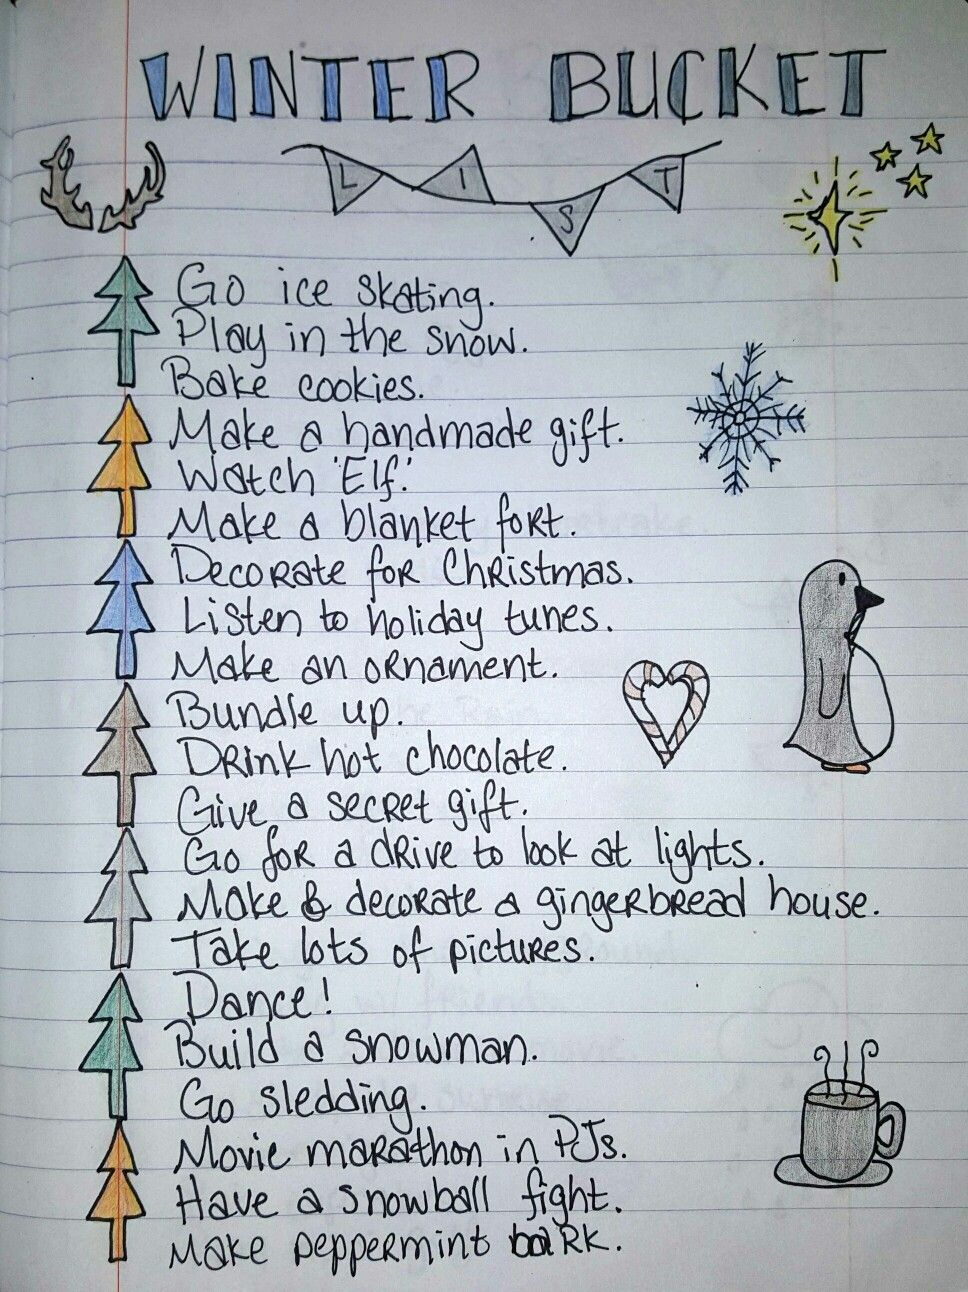 winter bucket list i made based off a fall bucket list pin i saw on